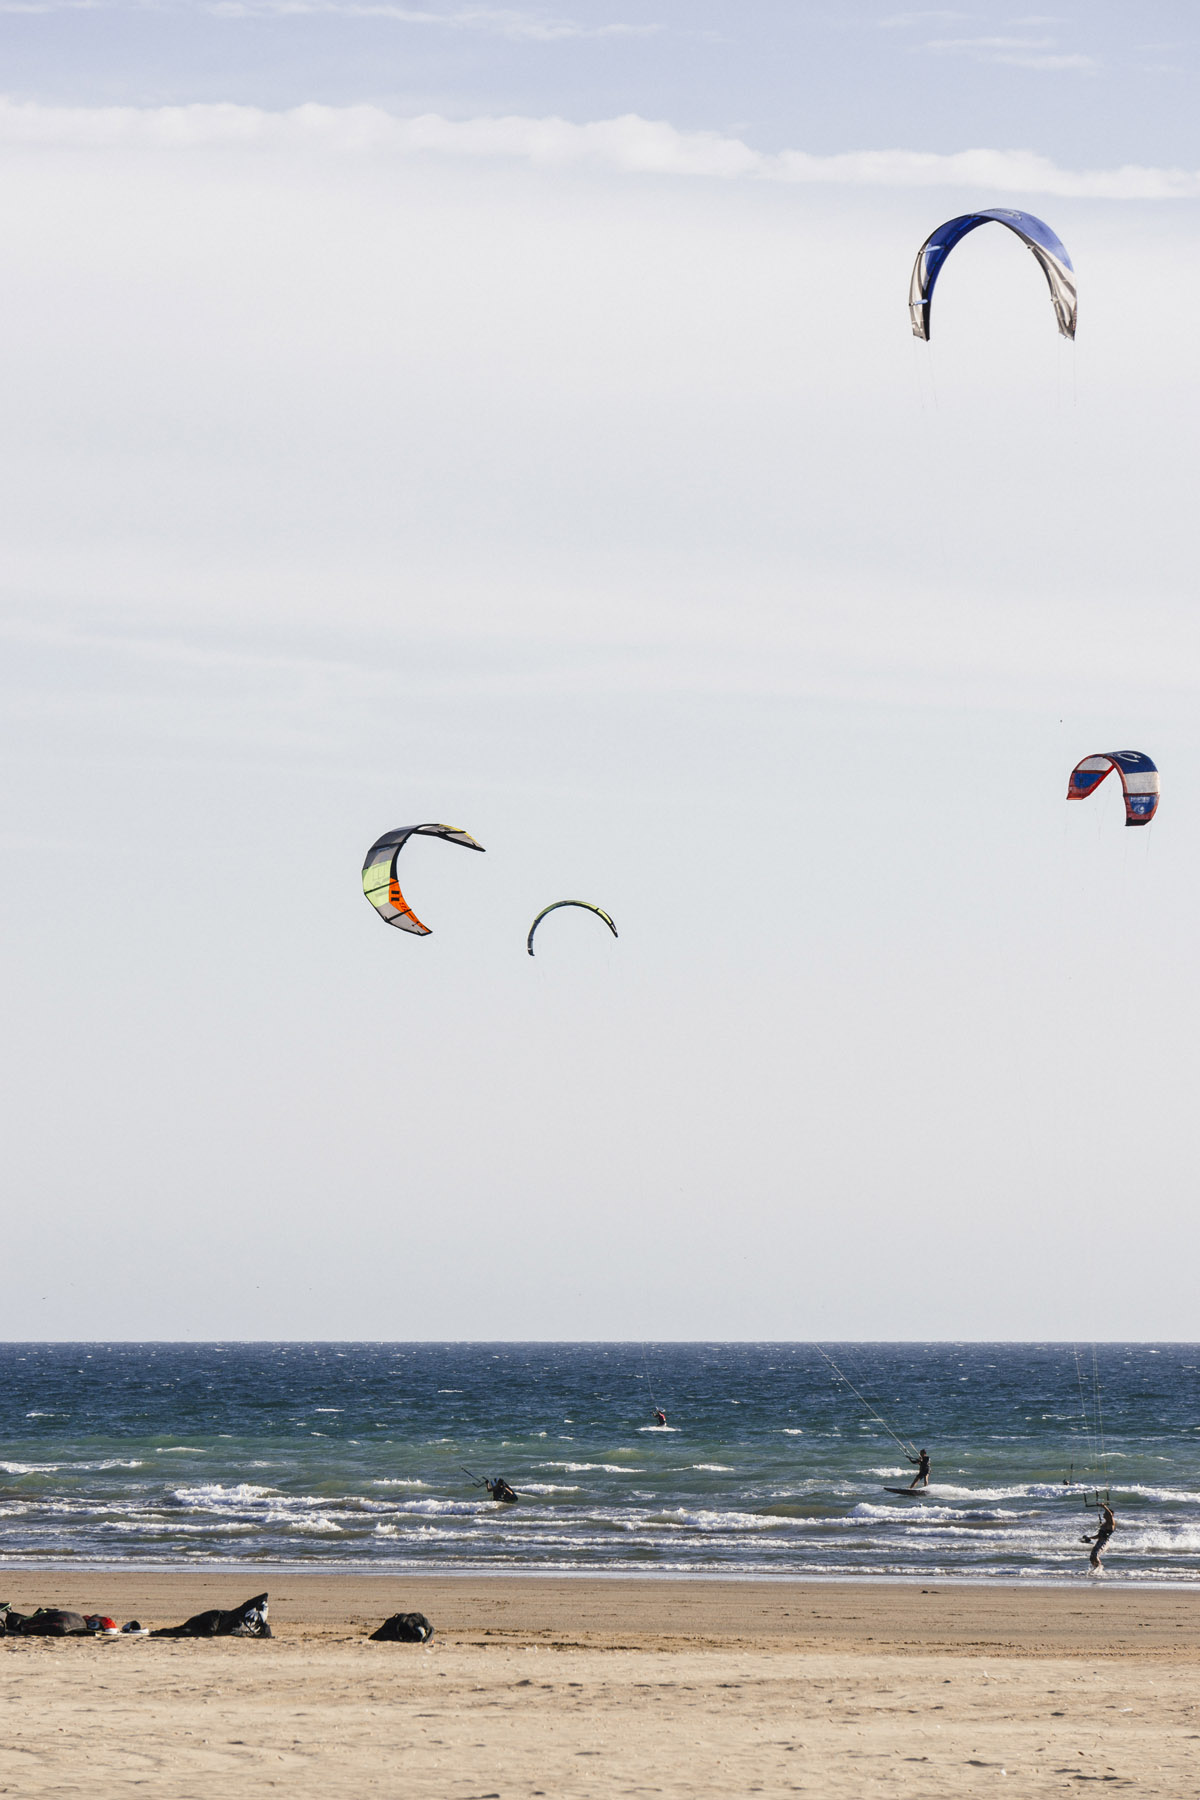 kitesurf at Punta Umbria, Huelva